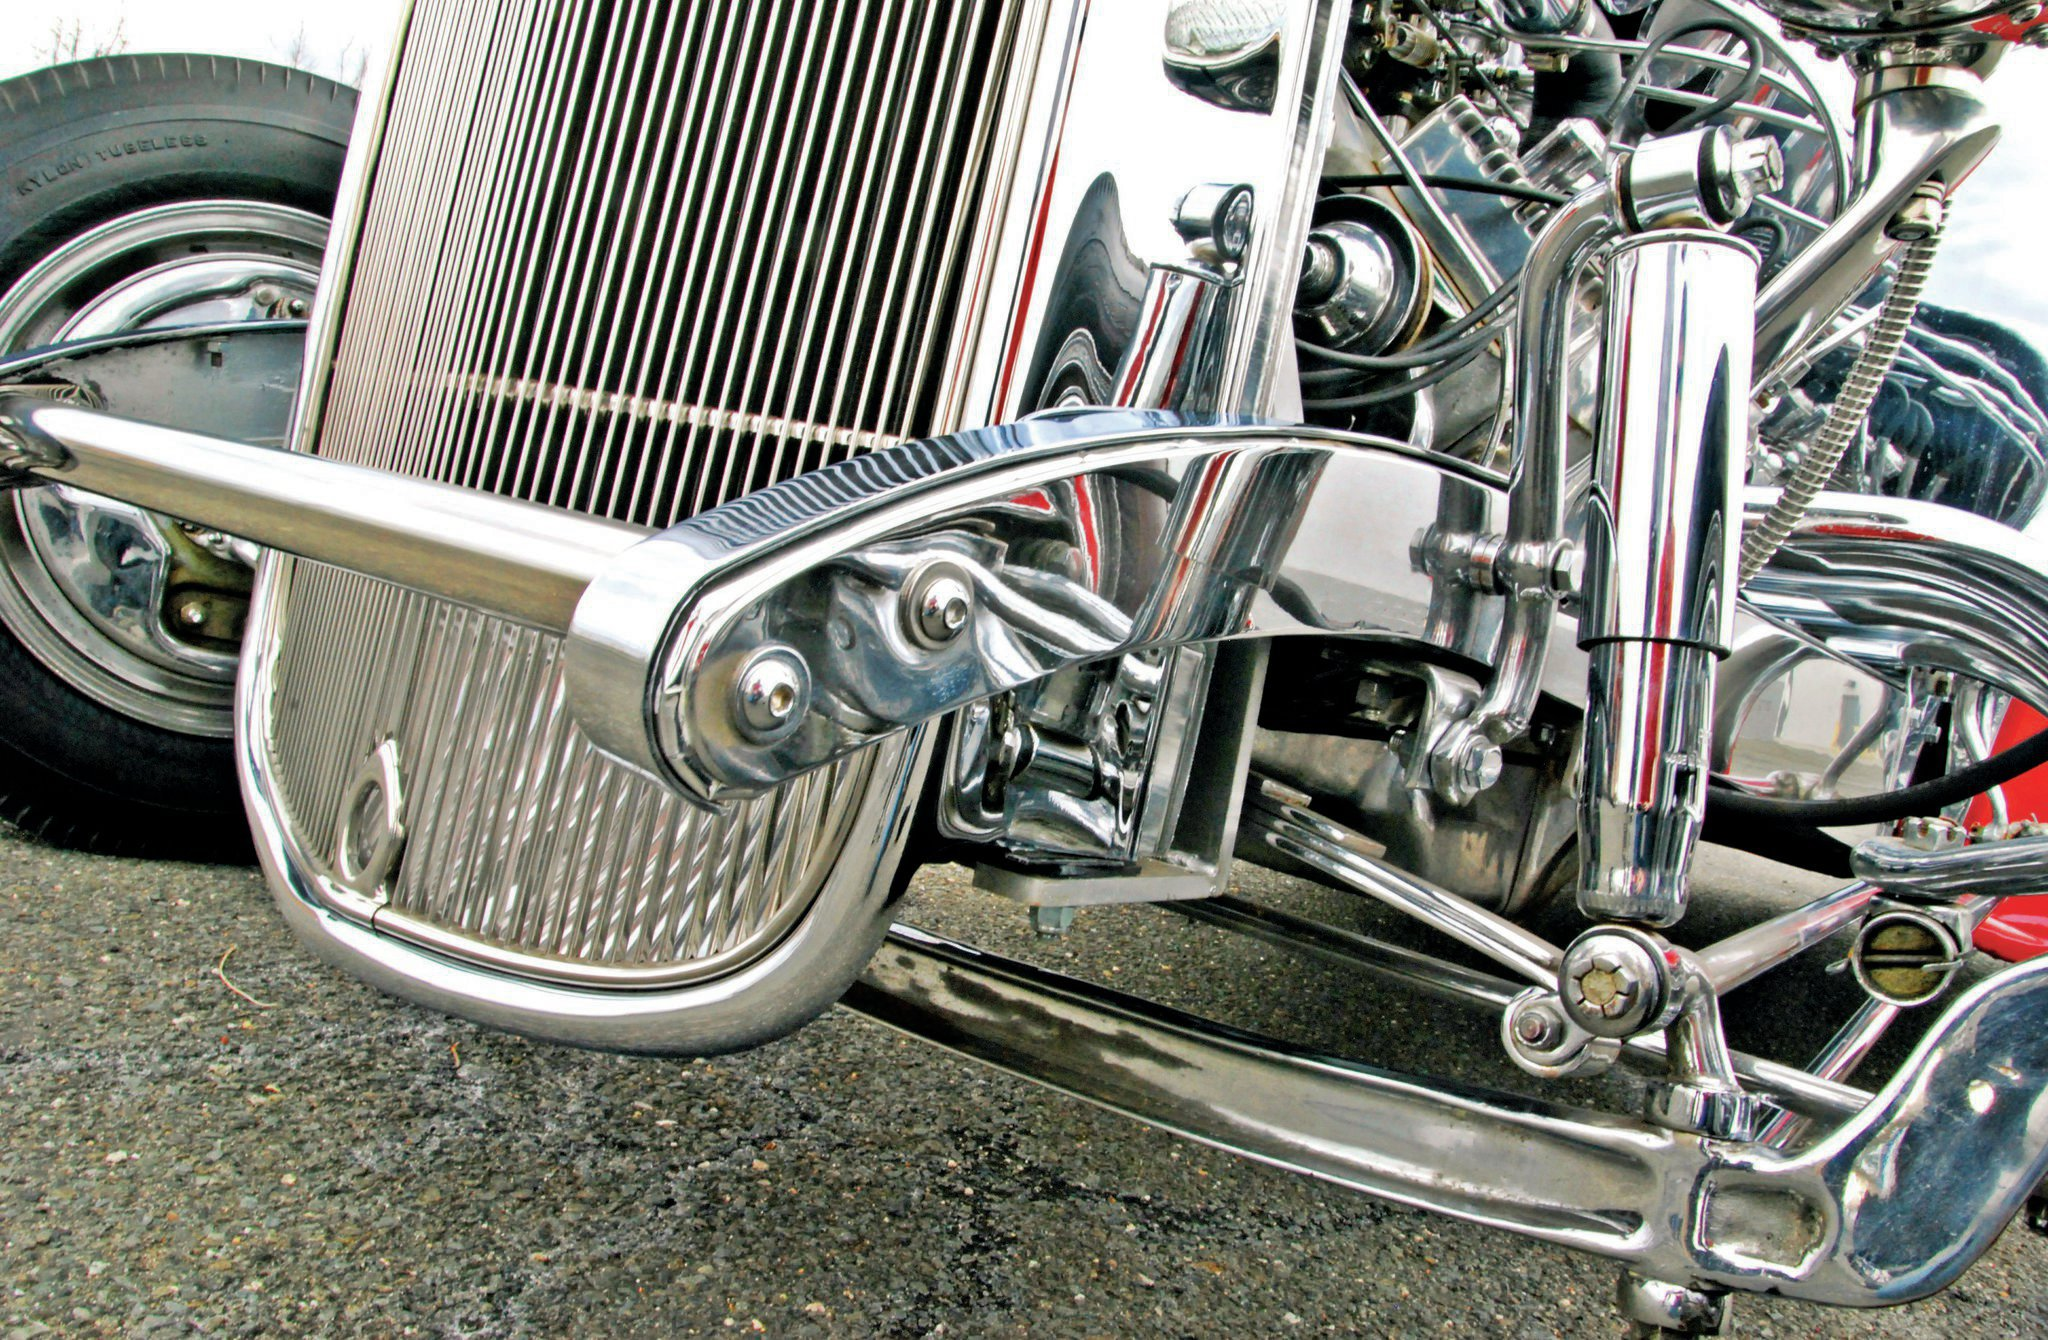 Andy tried to make subtle changes every year during the coupe's show car period. In the early '60s he decided to make caps for the front frame, and of course have them chromed. It complemented the already fully chromed front suspension. Airplane shocks finish the look and add a heavy-duty touch. Amazingly, this is all 50-year-old chrome.